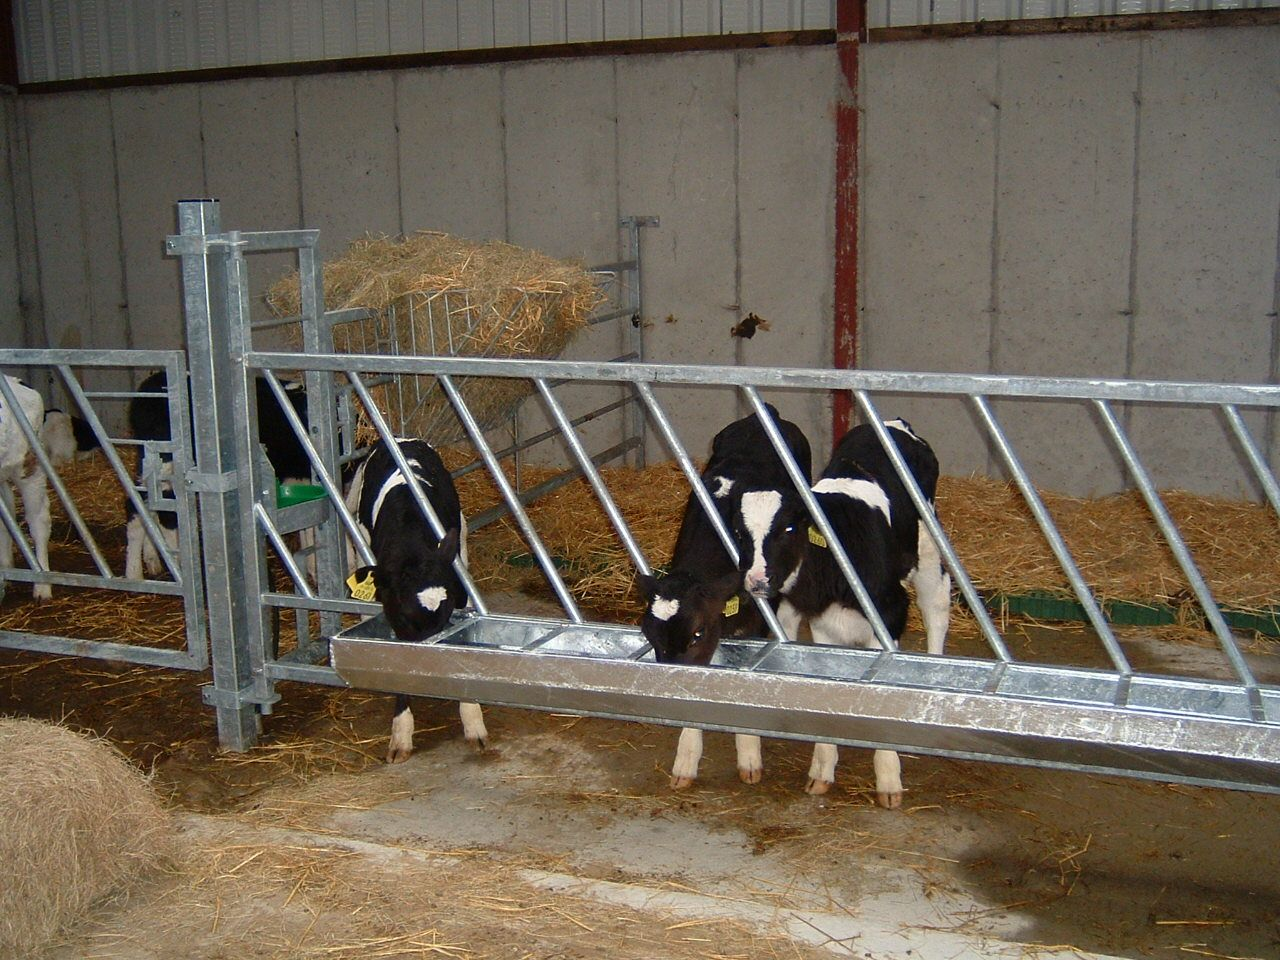 Image Result For Calf Sheds In Australia Cattle Farming Livestock Barn Cattle Ranching